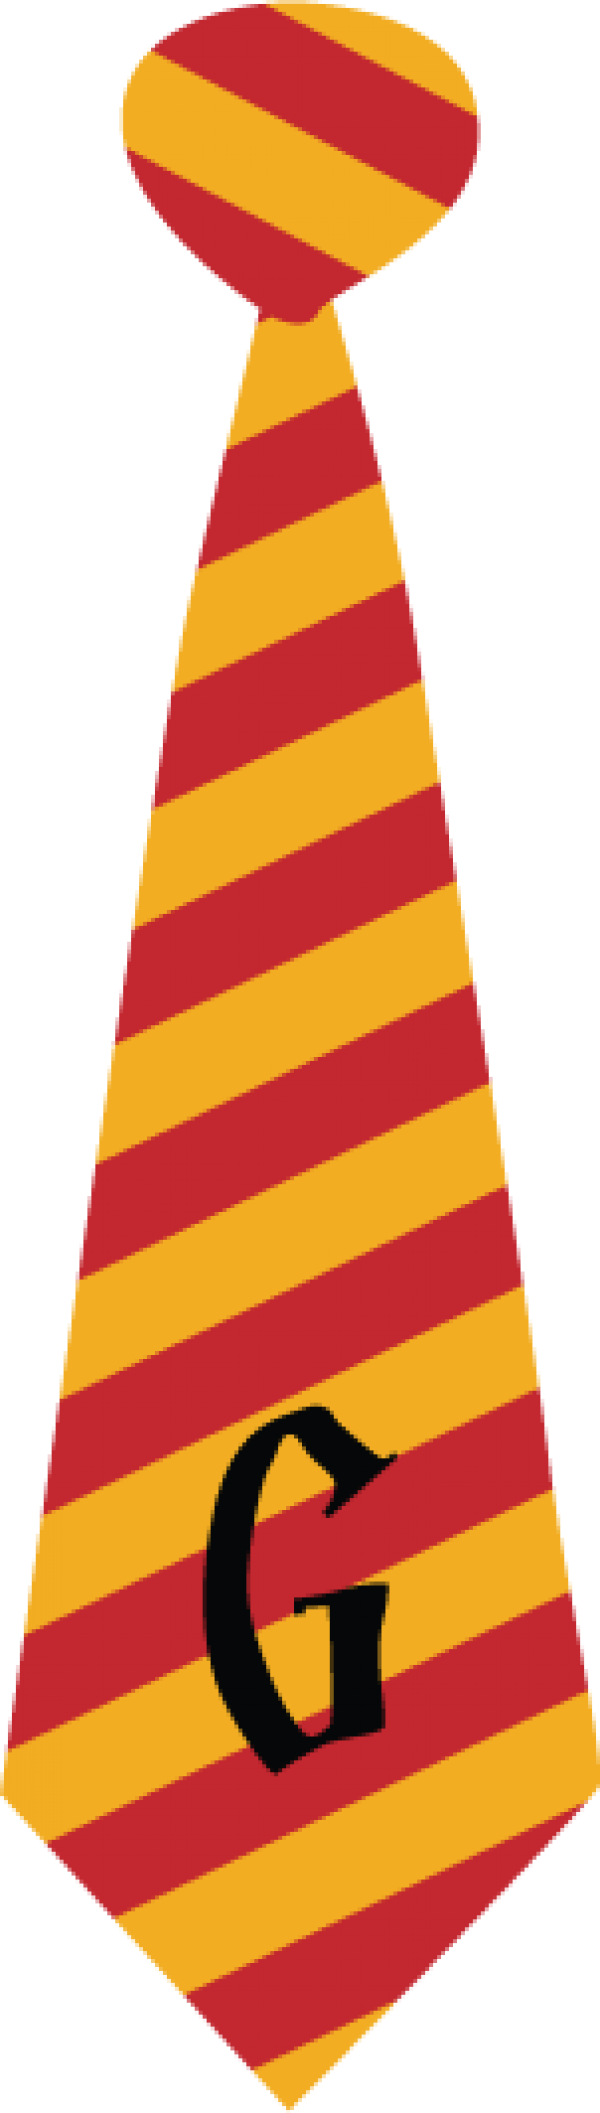 png royalty free library Gryffindor Tie